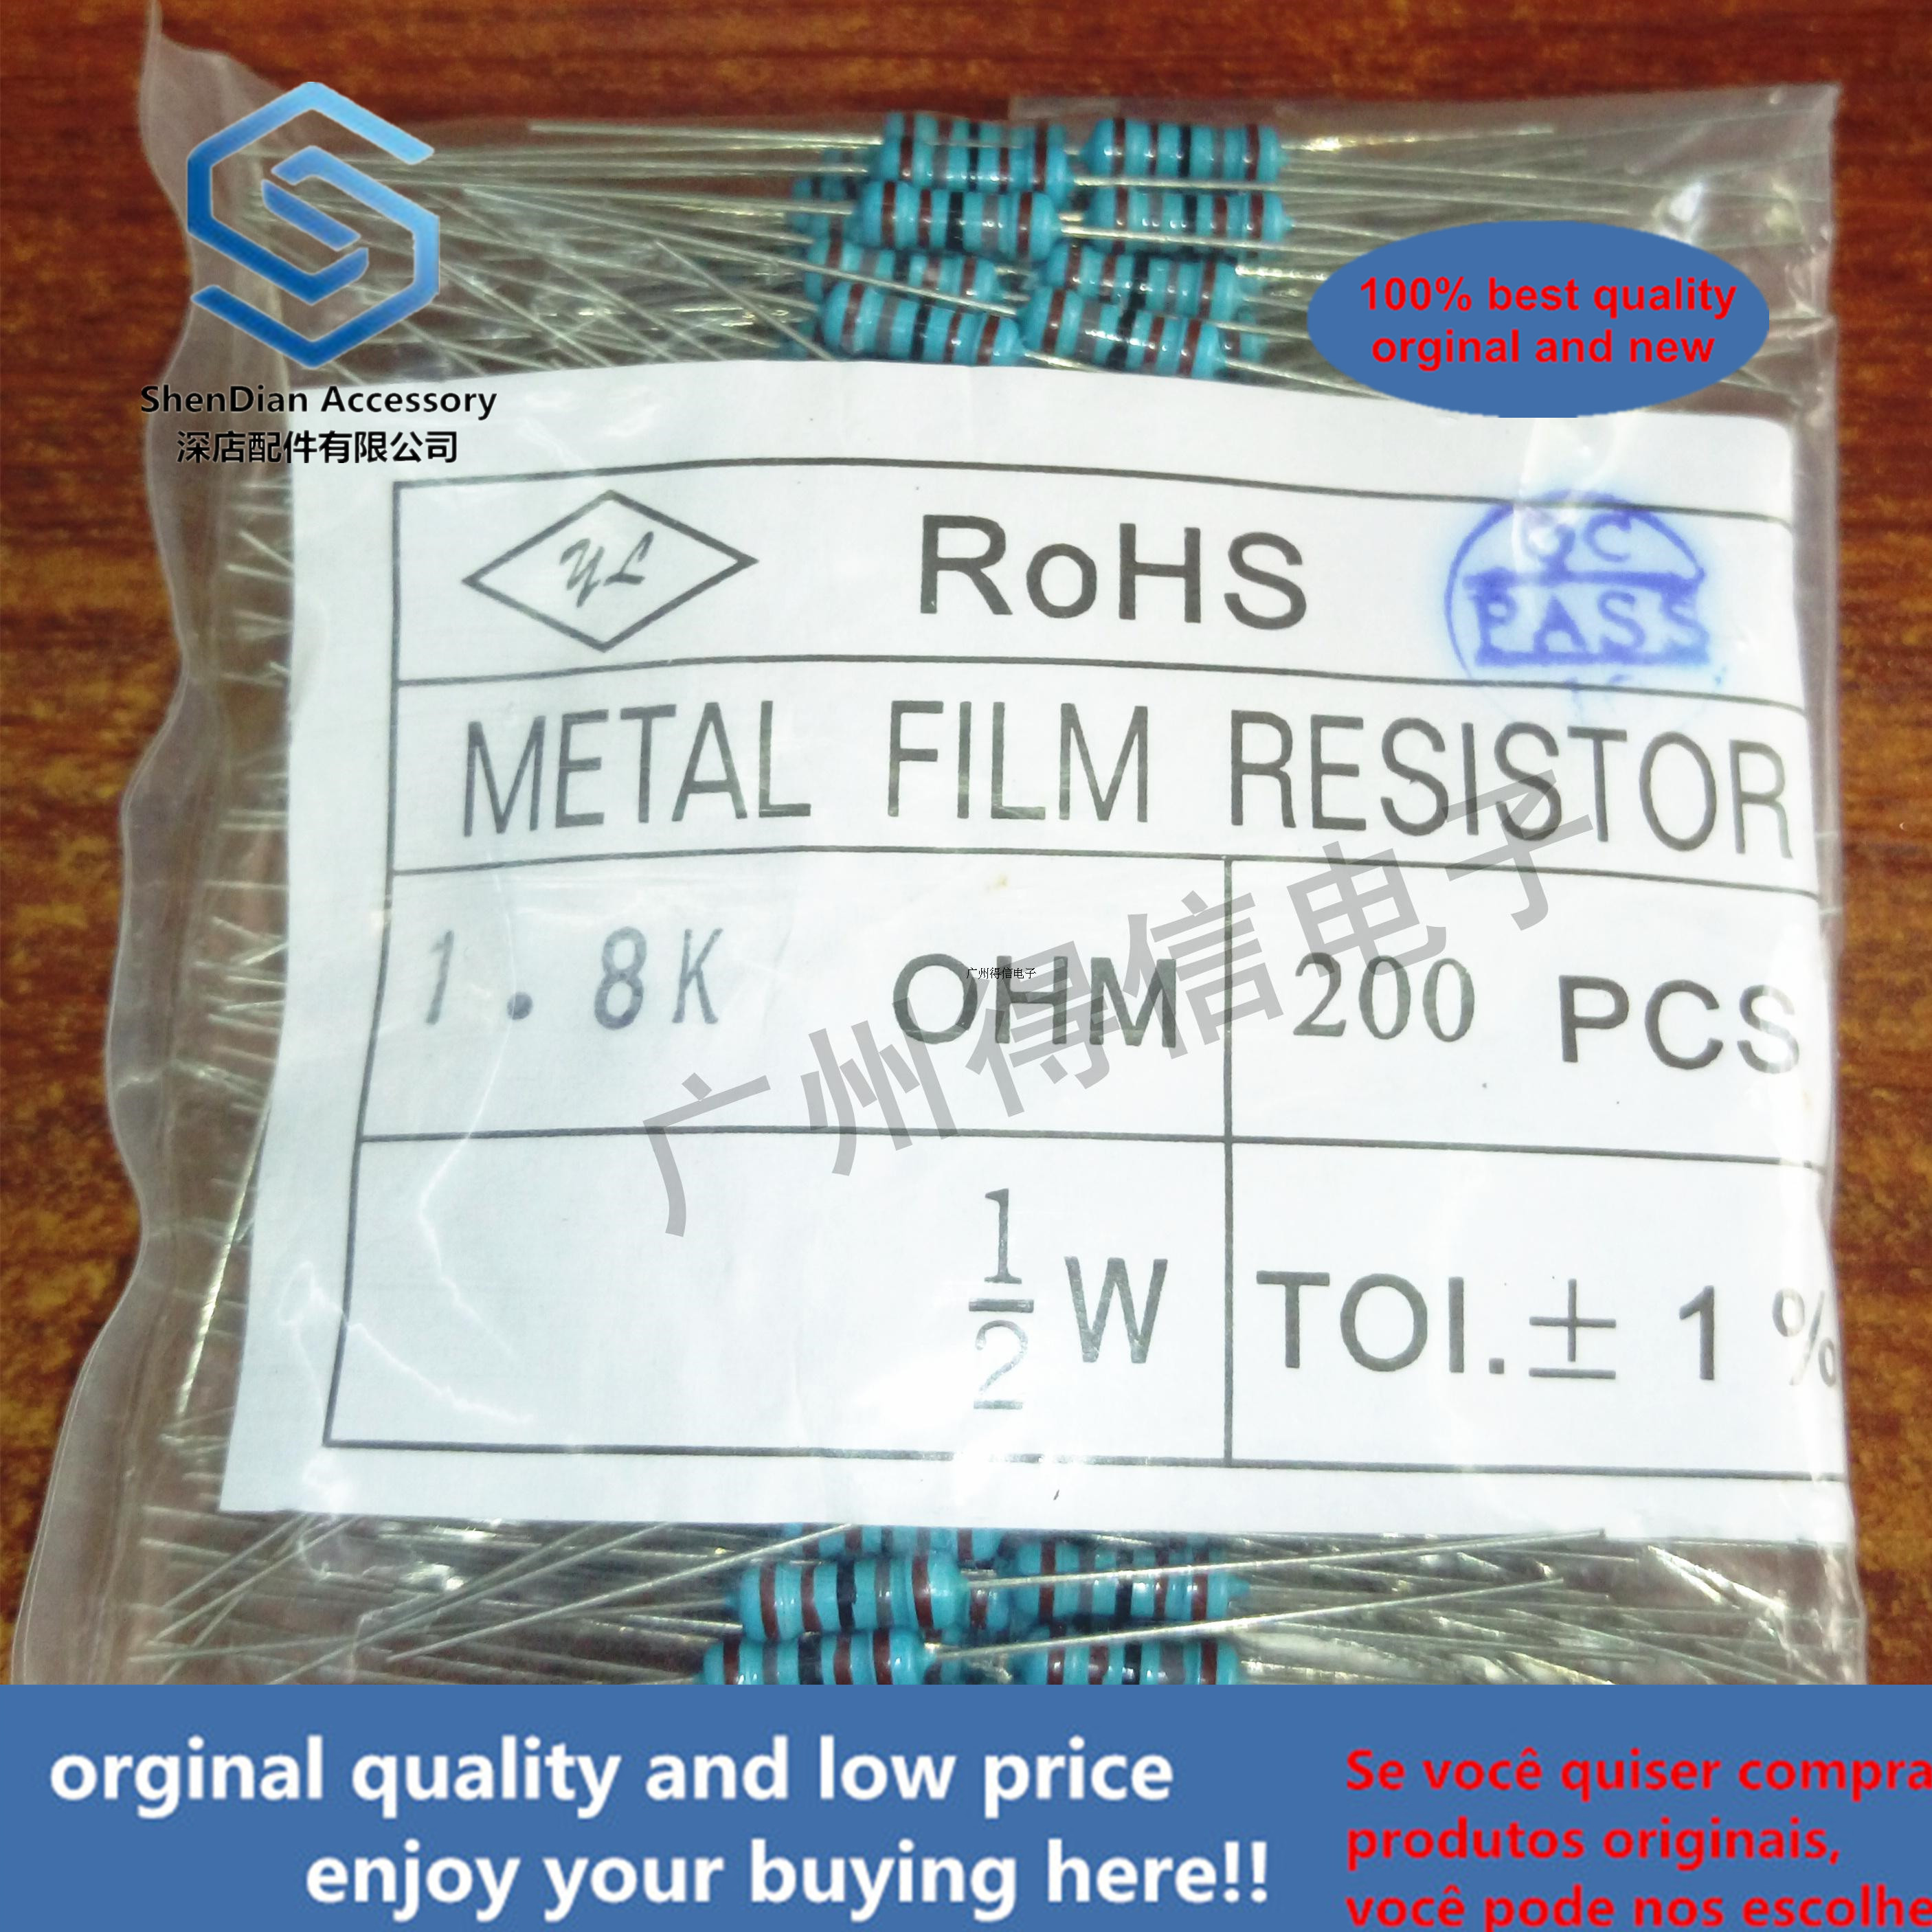 200pcs 1 / 2W 5.1R 5.1Euro 1% Brand New Metal Film Iron Feet Resistance Bag 200pcs Per Pack